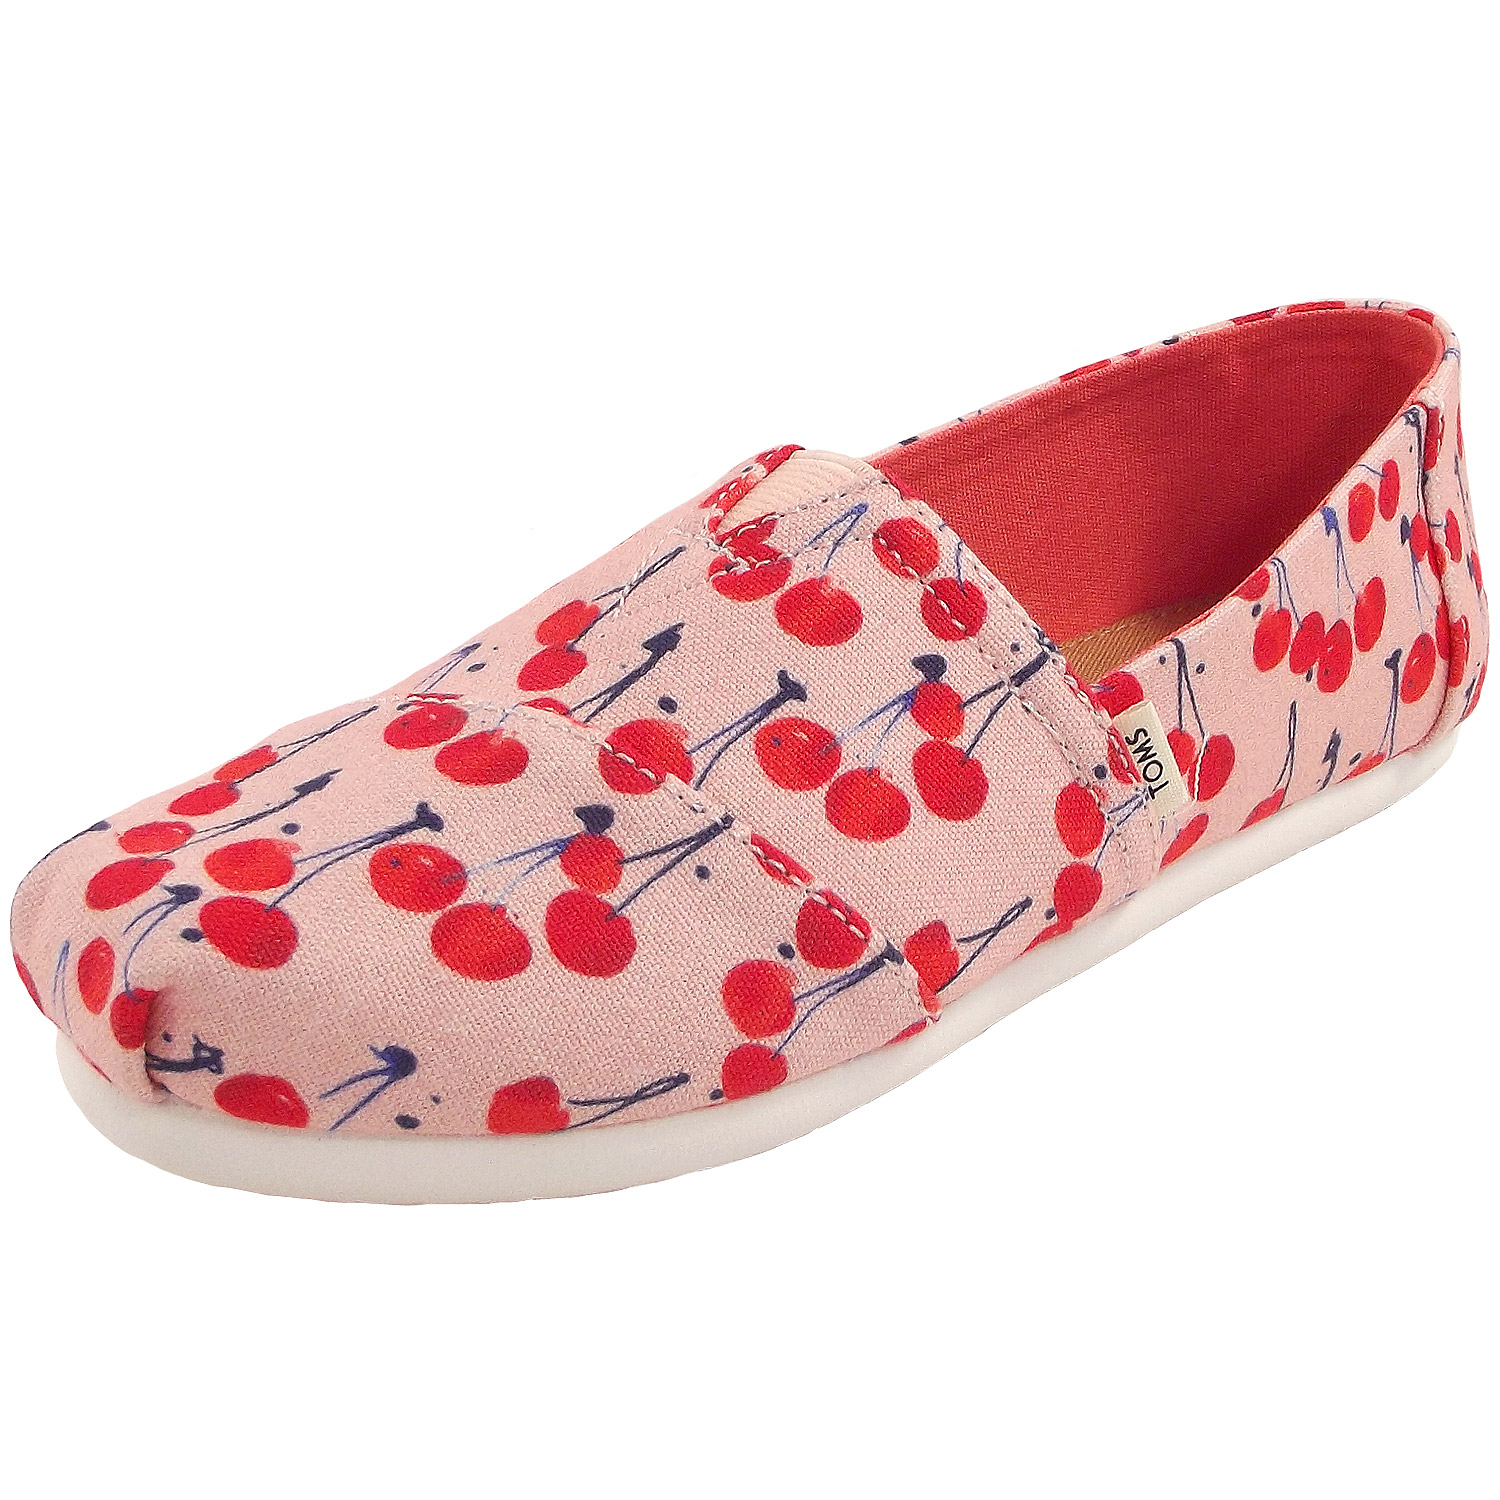 new products 6e8c4 7e29d Toms Classic Cherie Print Youth Mädchen Espadrilles rosa (coral pink/cherry)